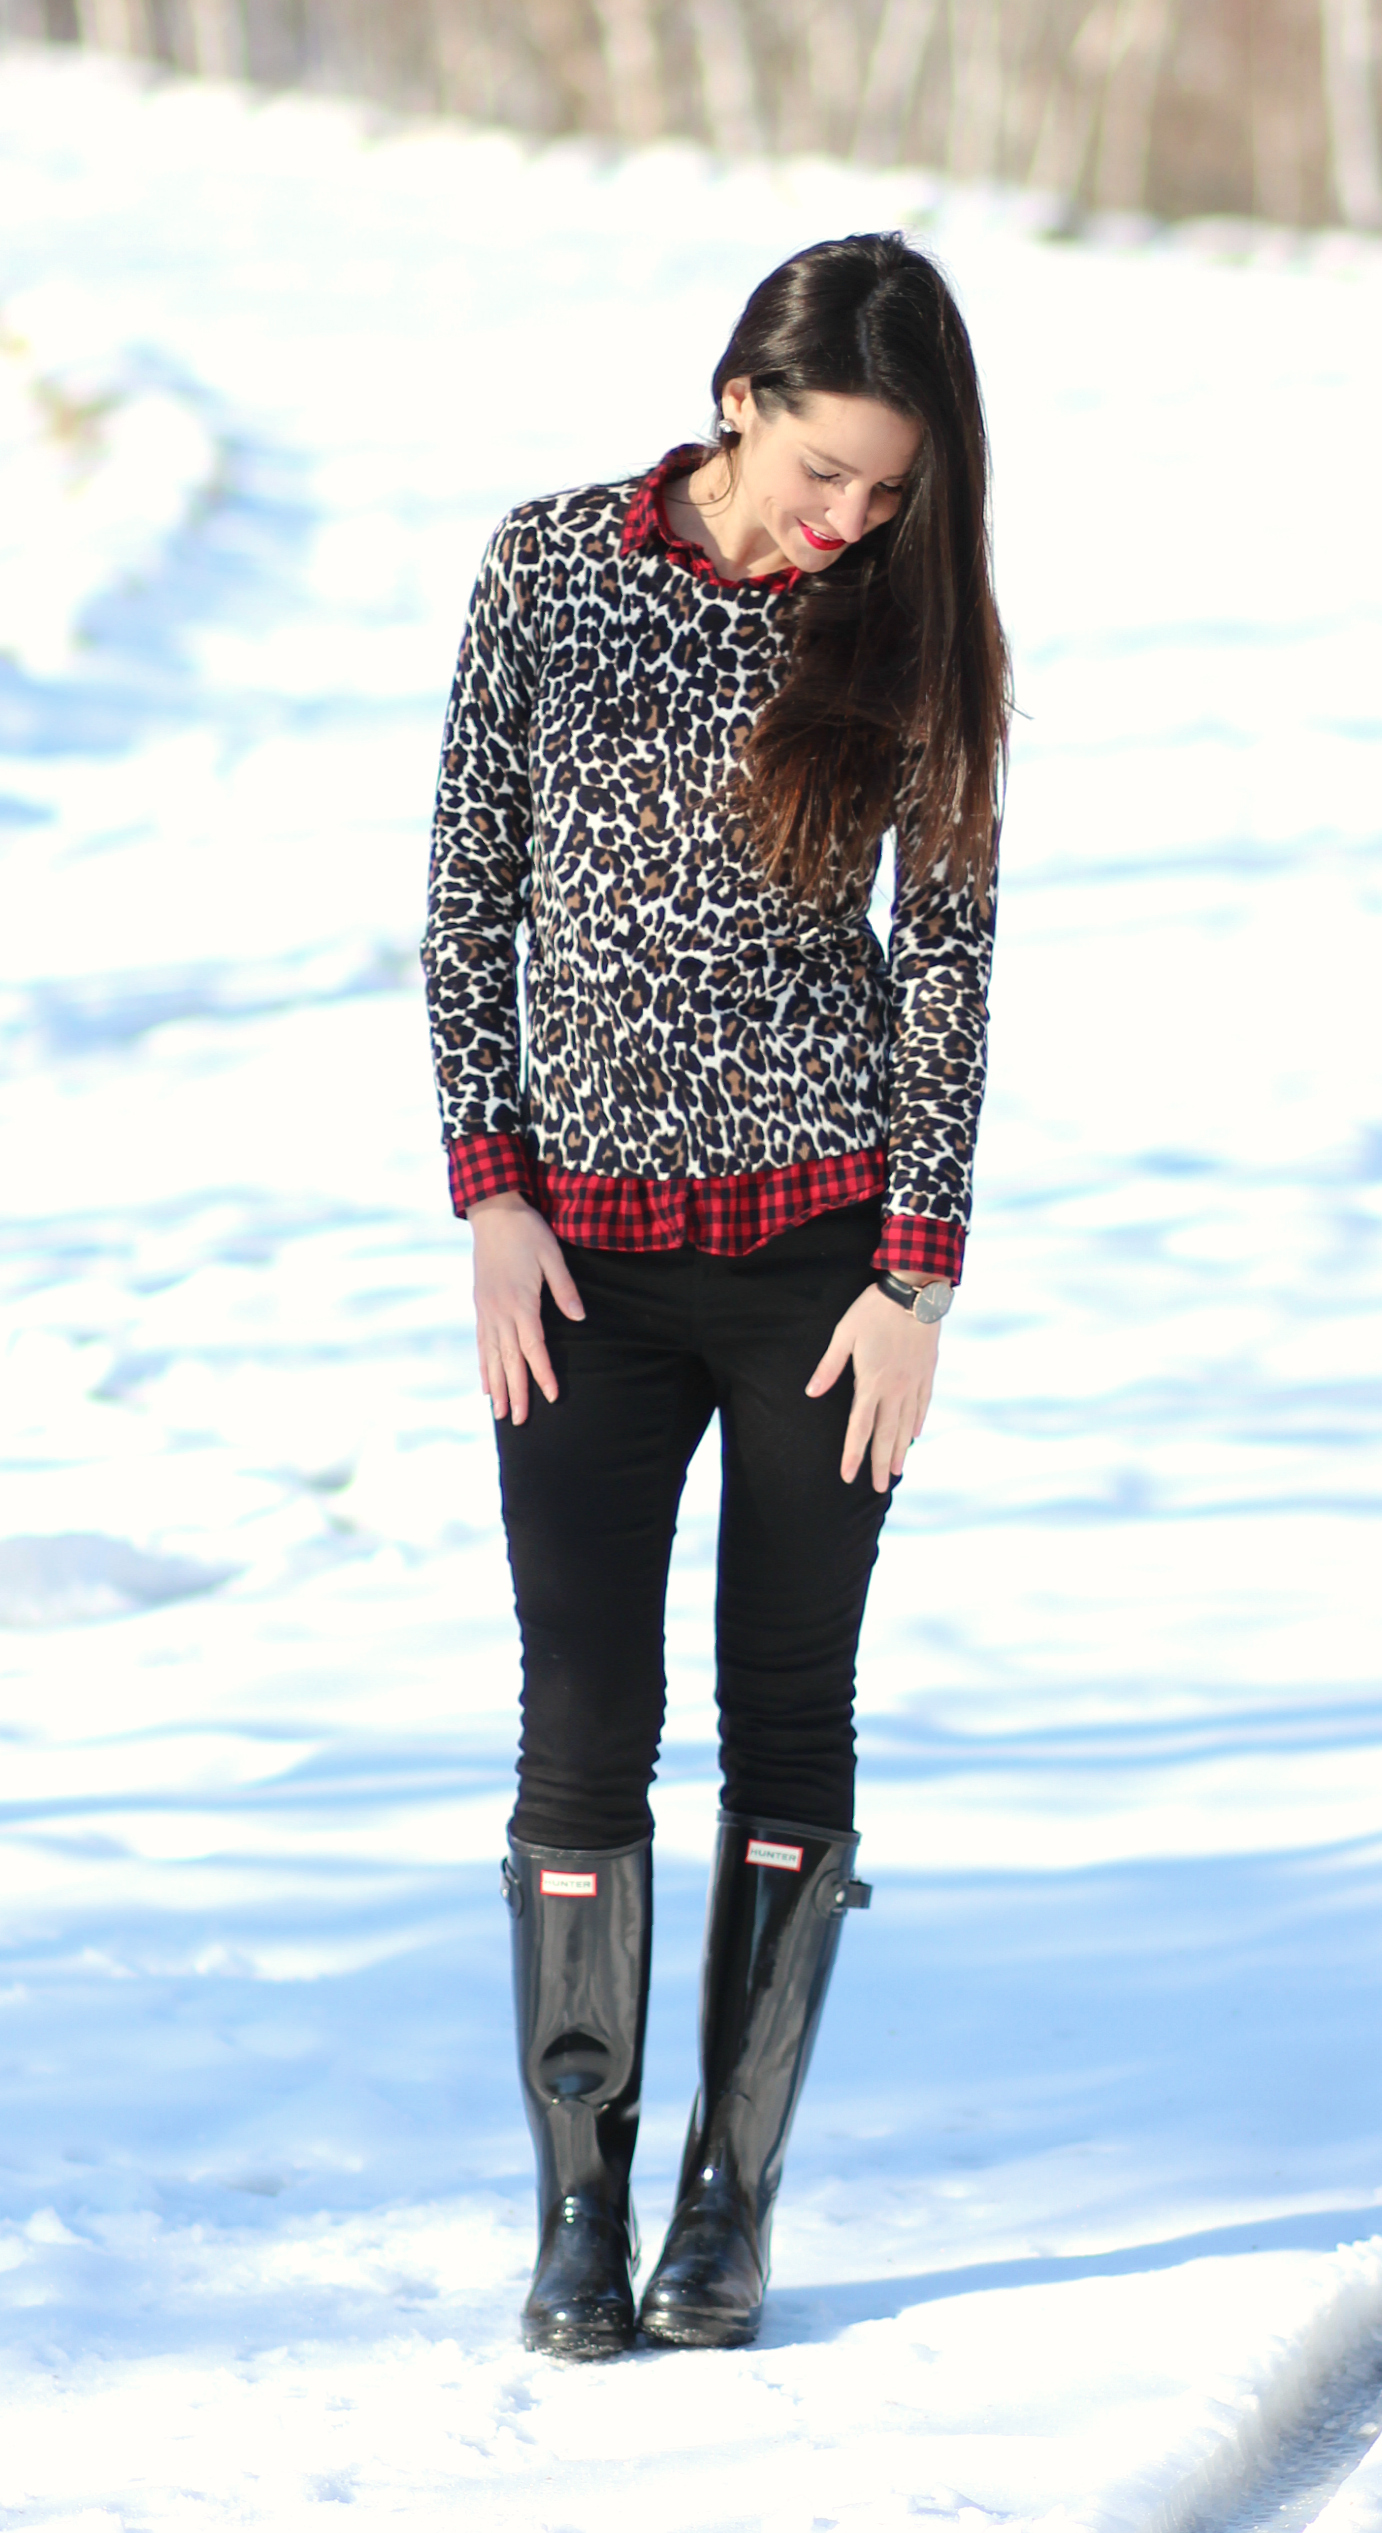 J.Crew Factory Leopard Crewneck Sweater